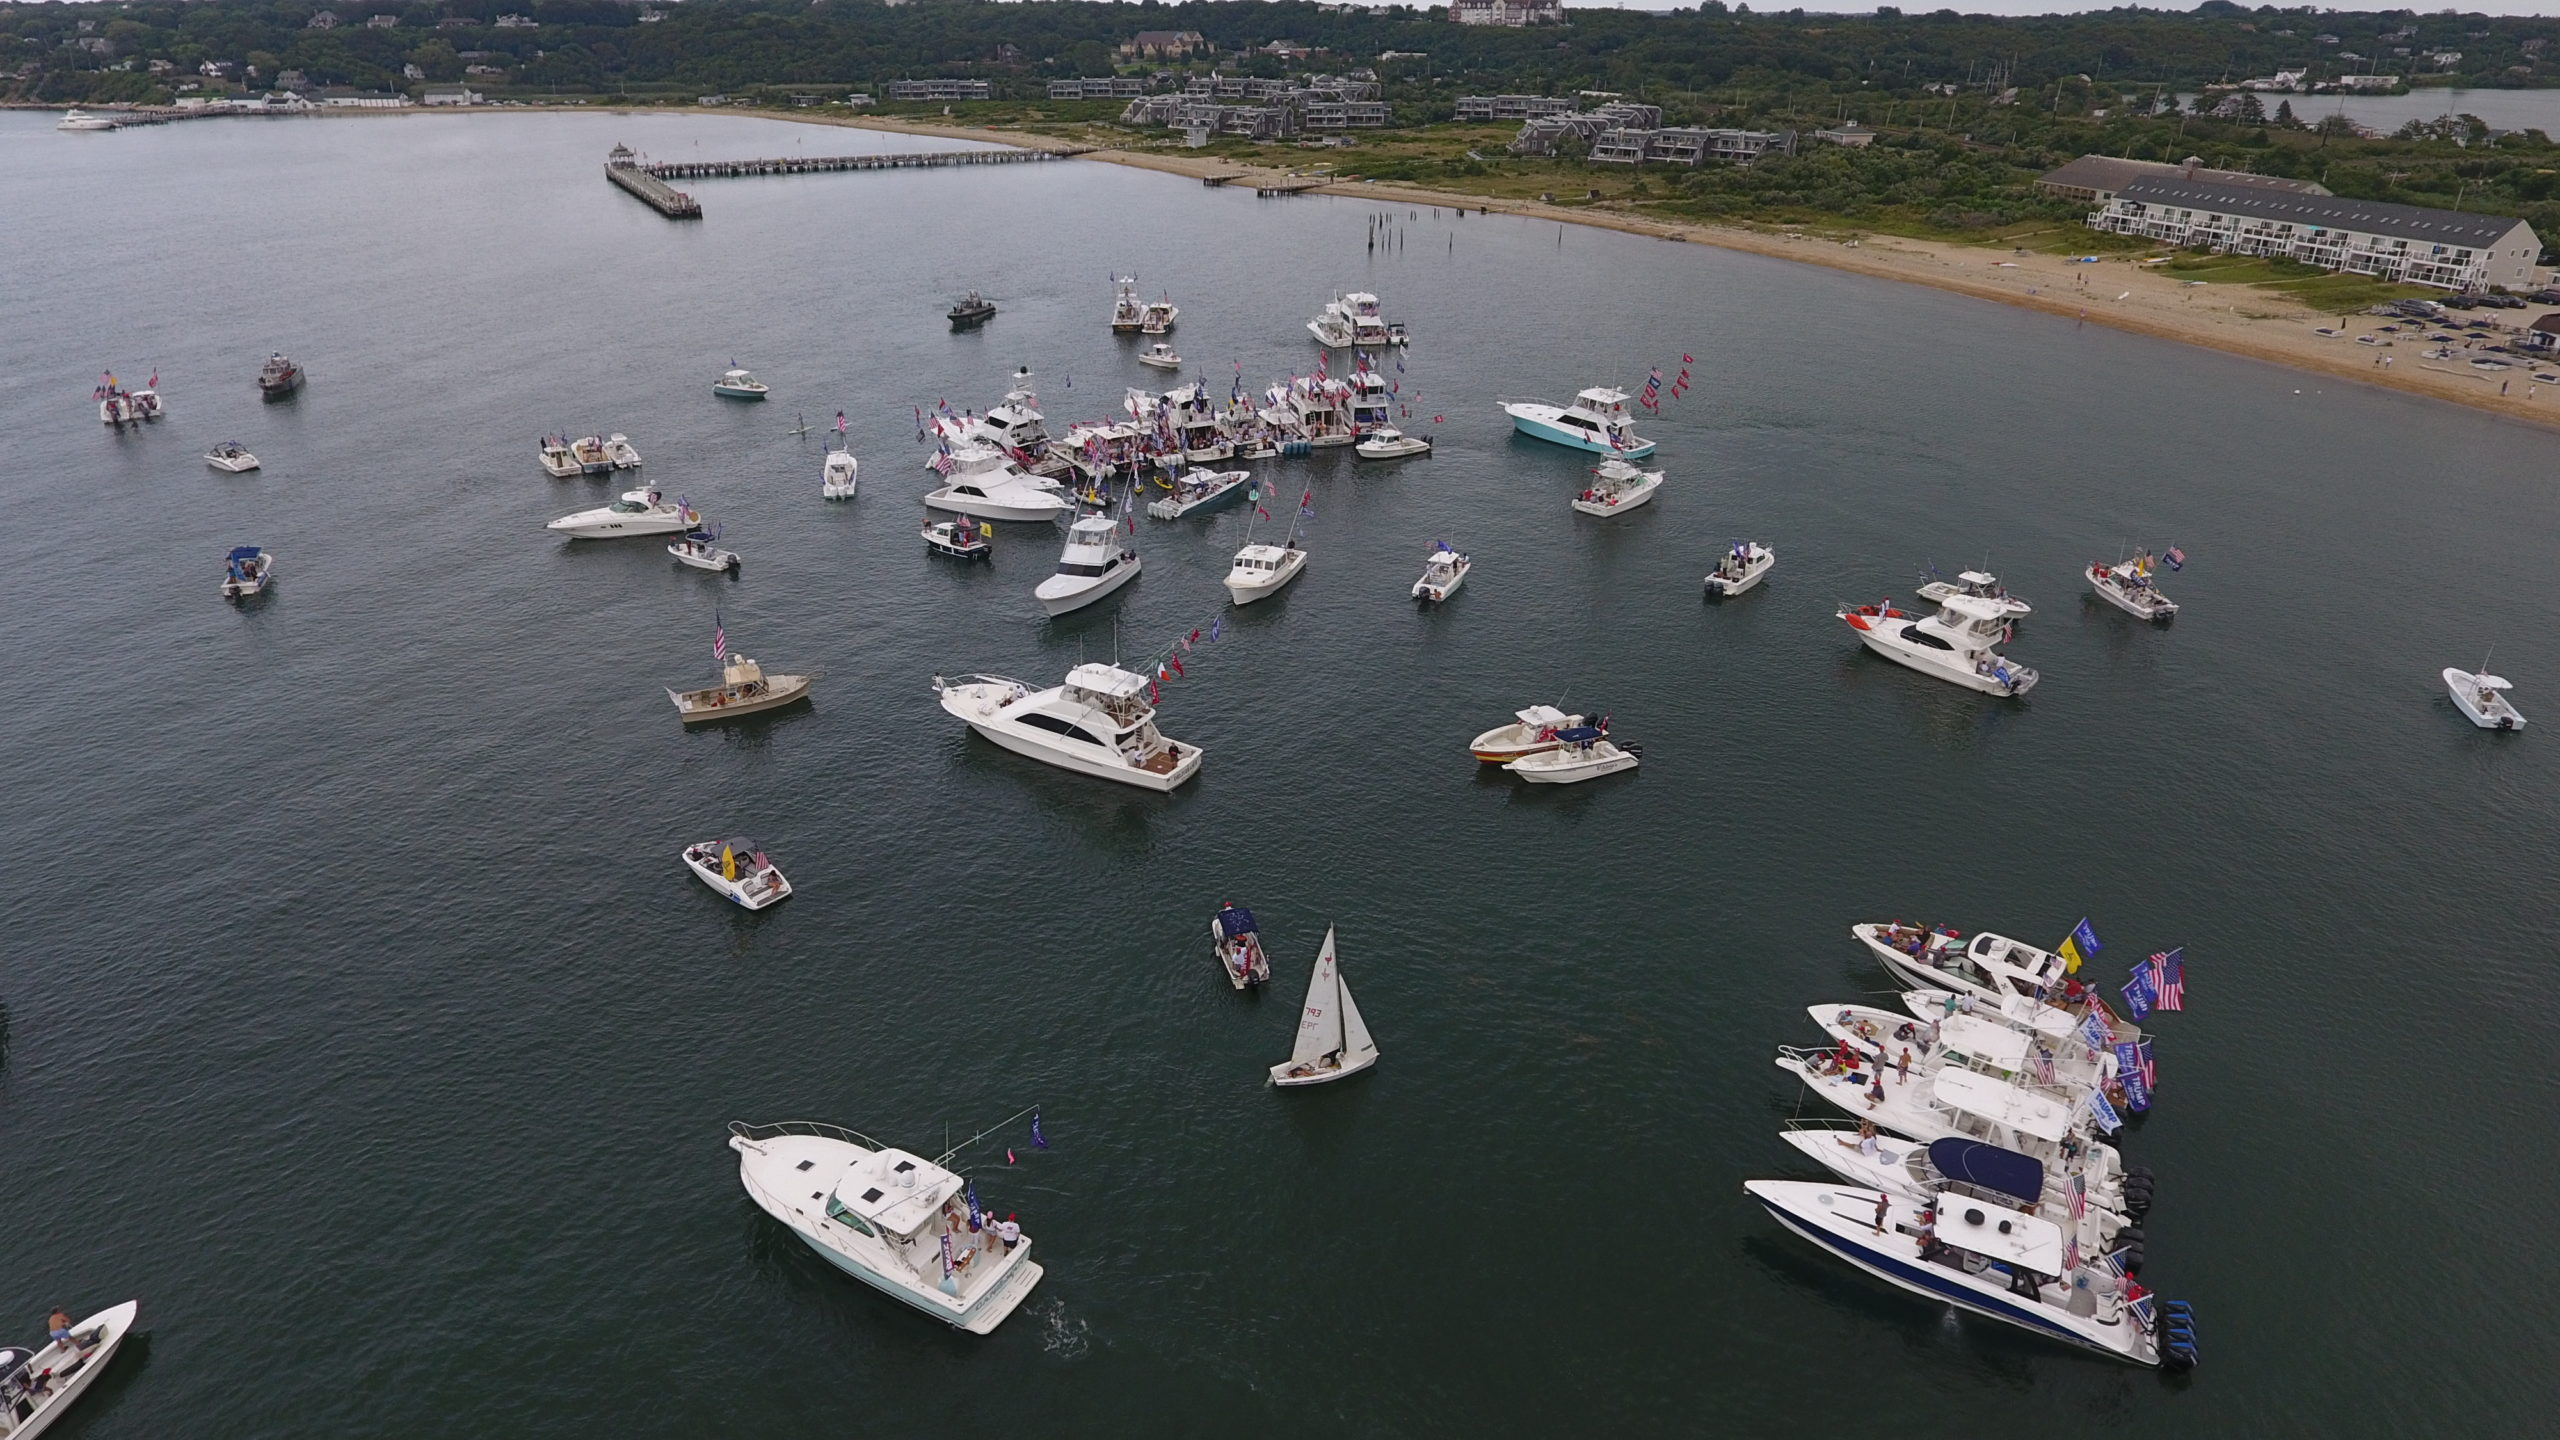 The flotilla anchored up in Fort Pond Bay.